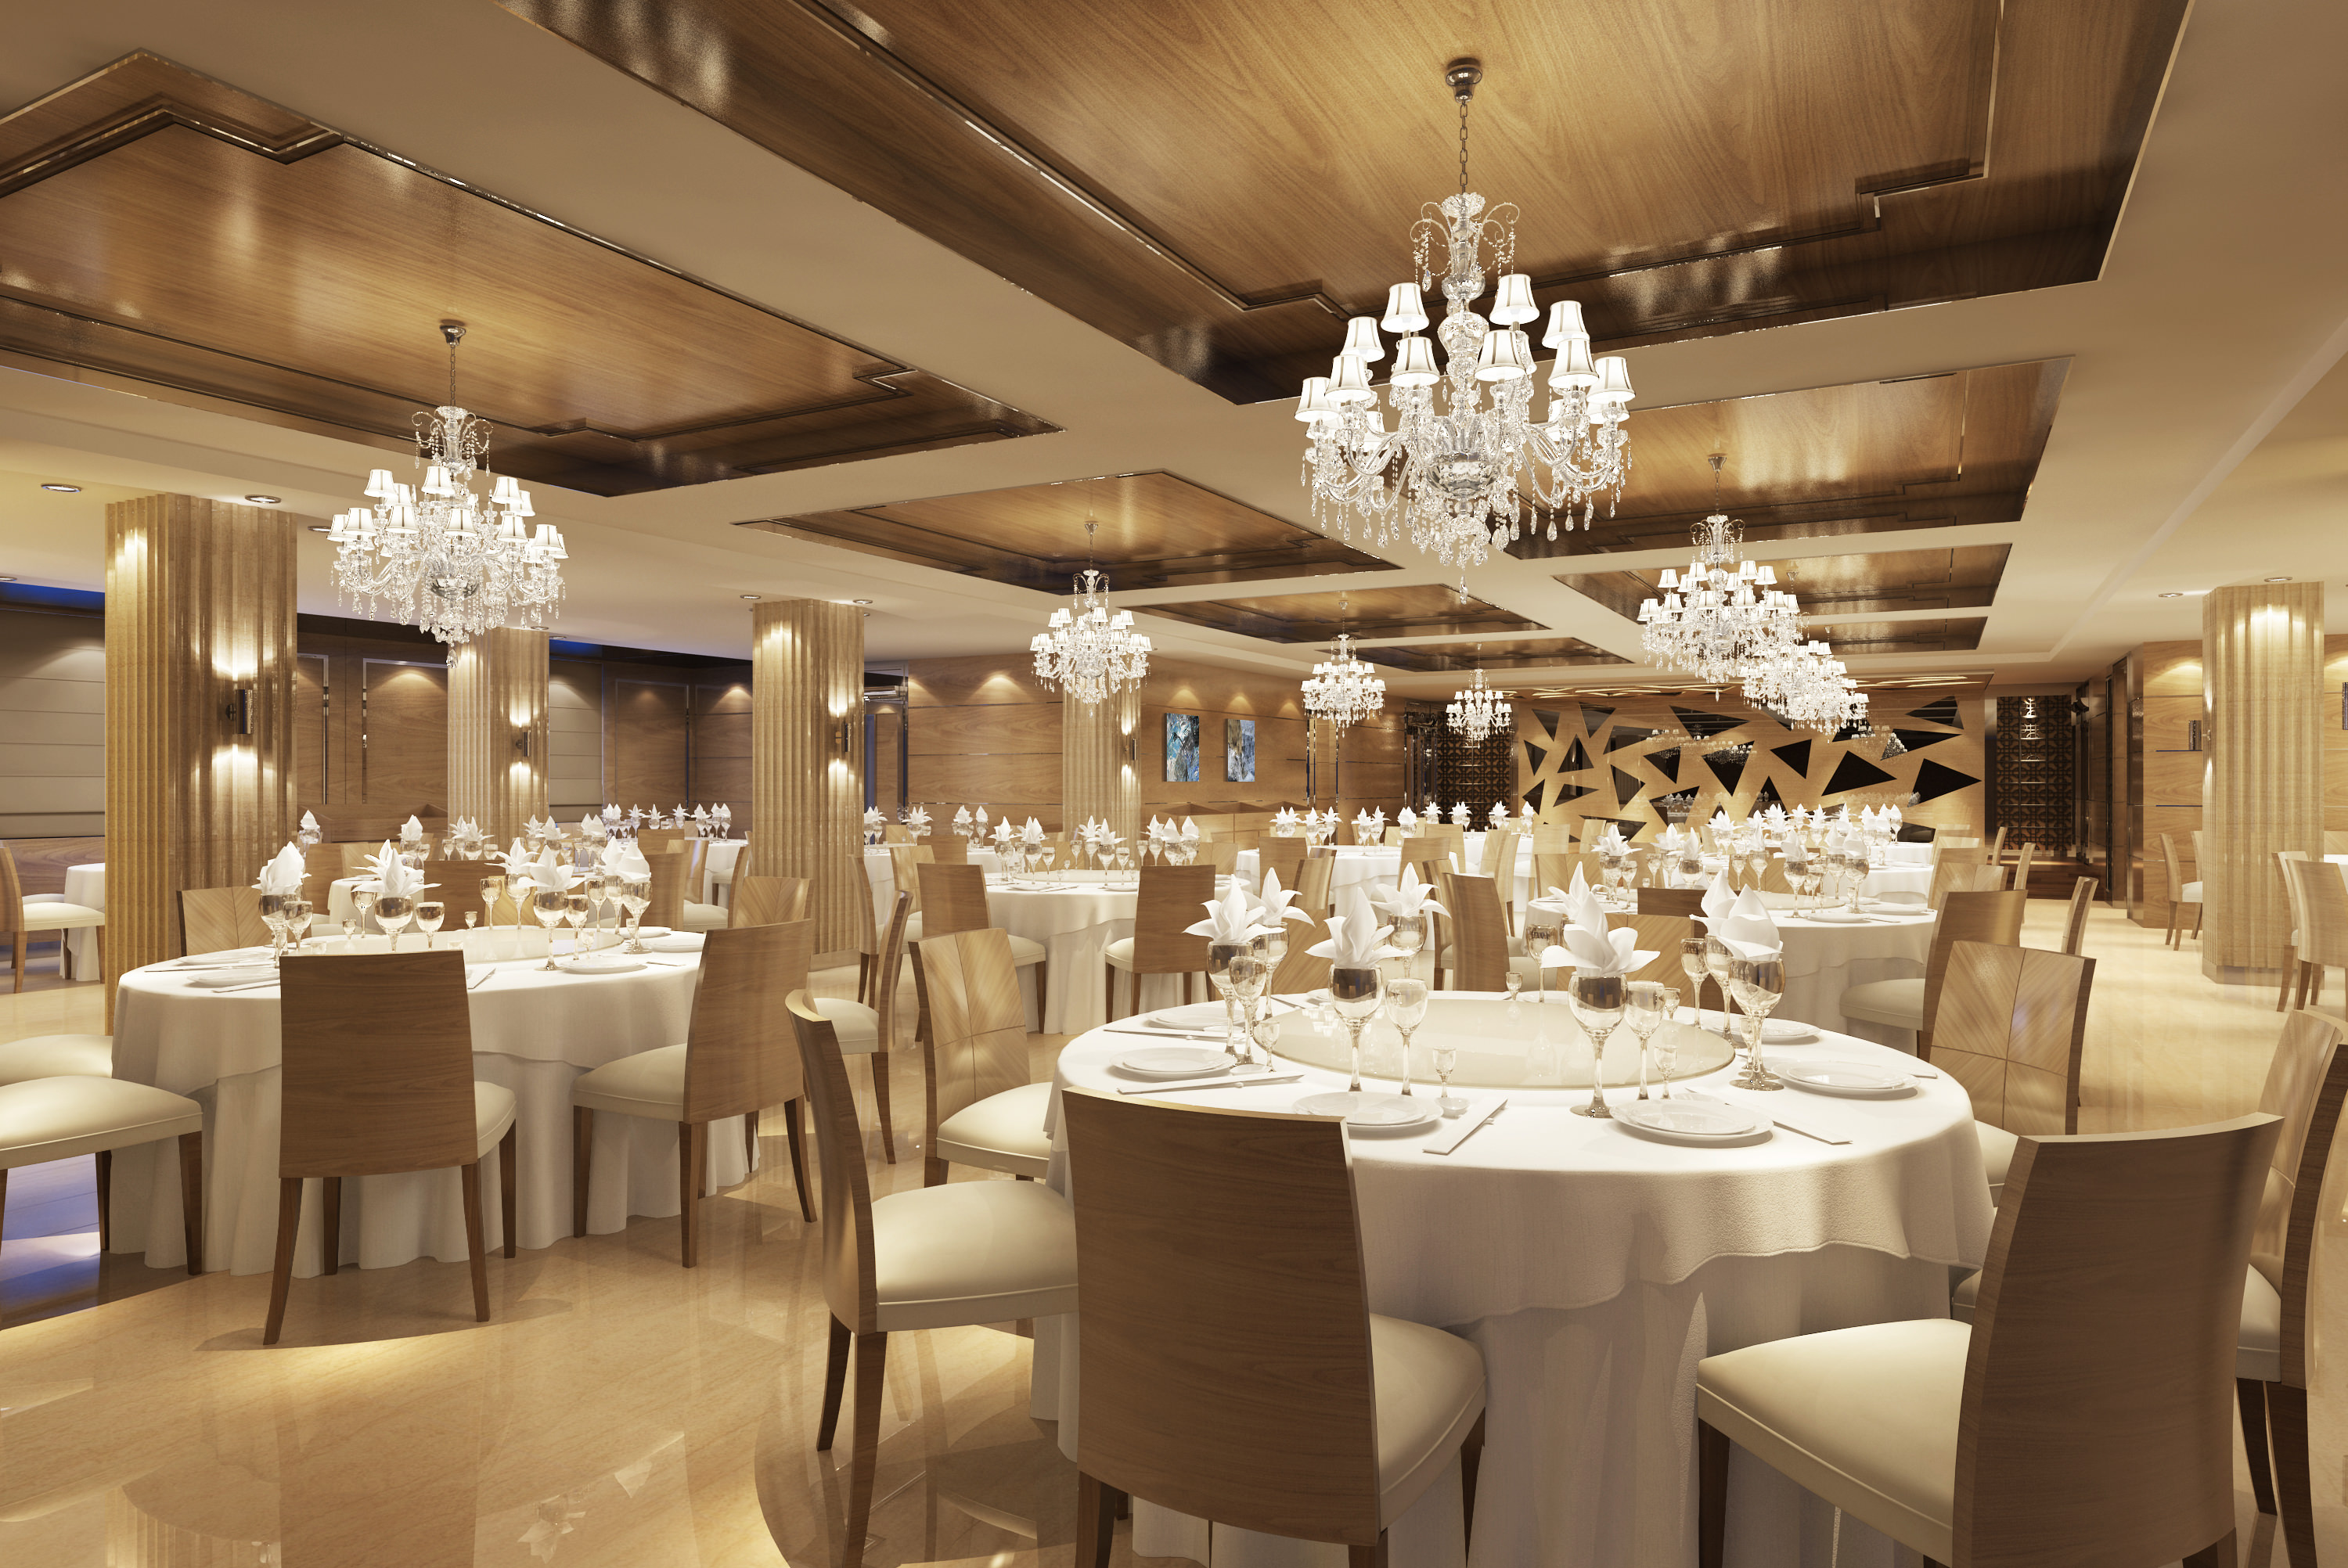 Classy Restaurant With Posh Chandeliers 3d Model Max